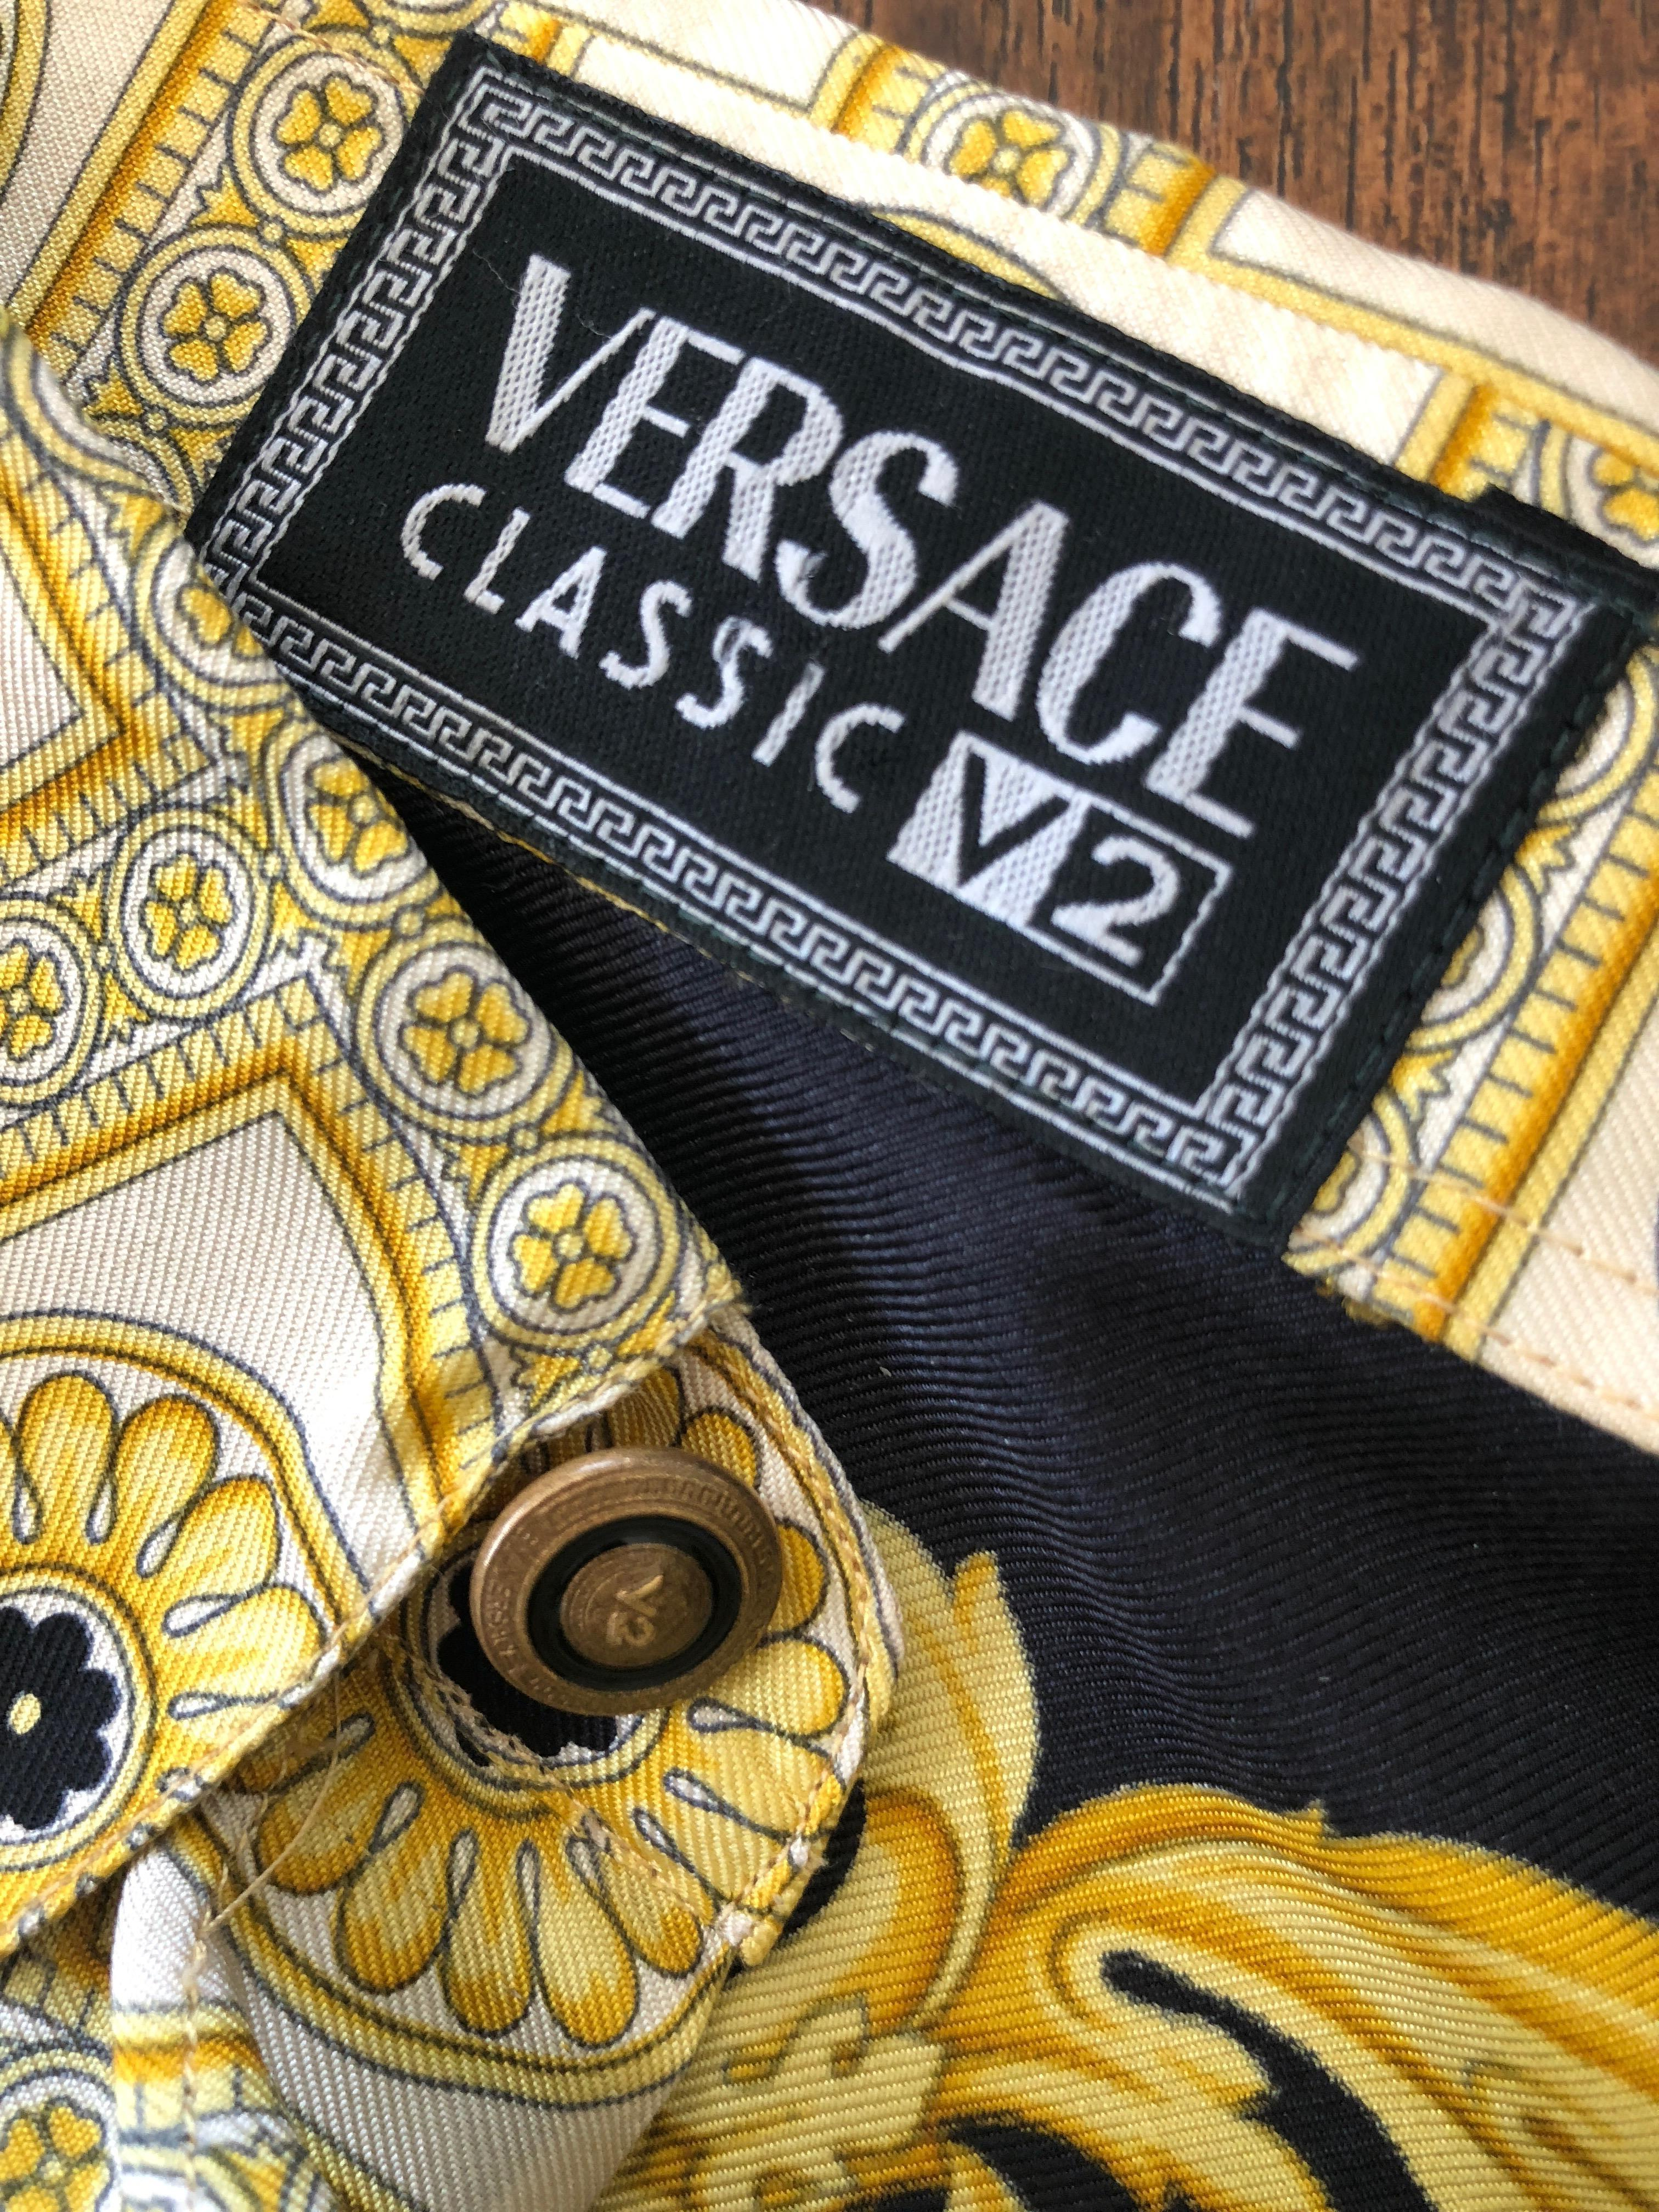 b0472a29 V2 Gianni Versace 1999 Black and Gold Baroque Imperial Eagle 100% Silk Shirt  For Sale at 1stdibs